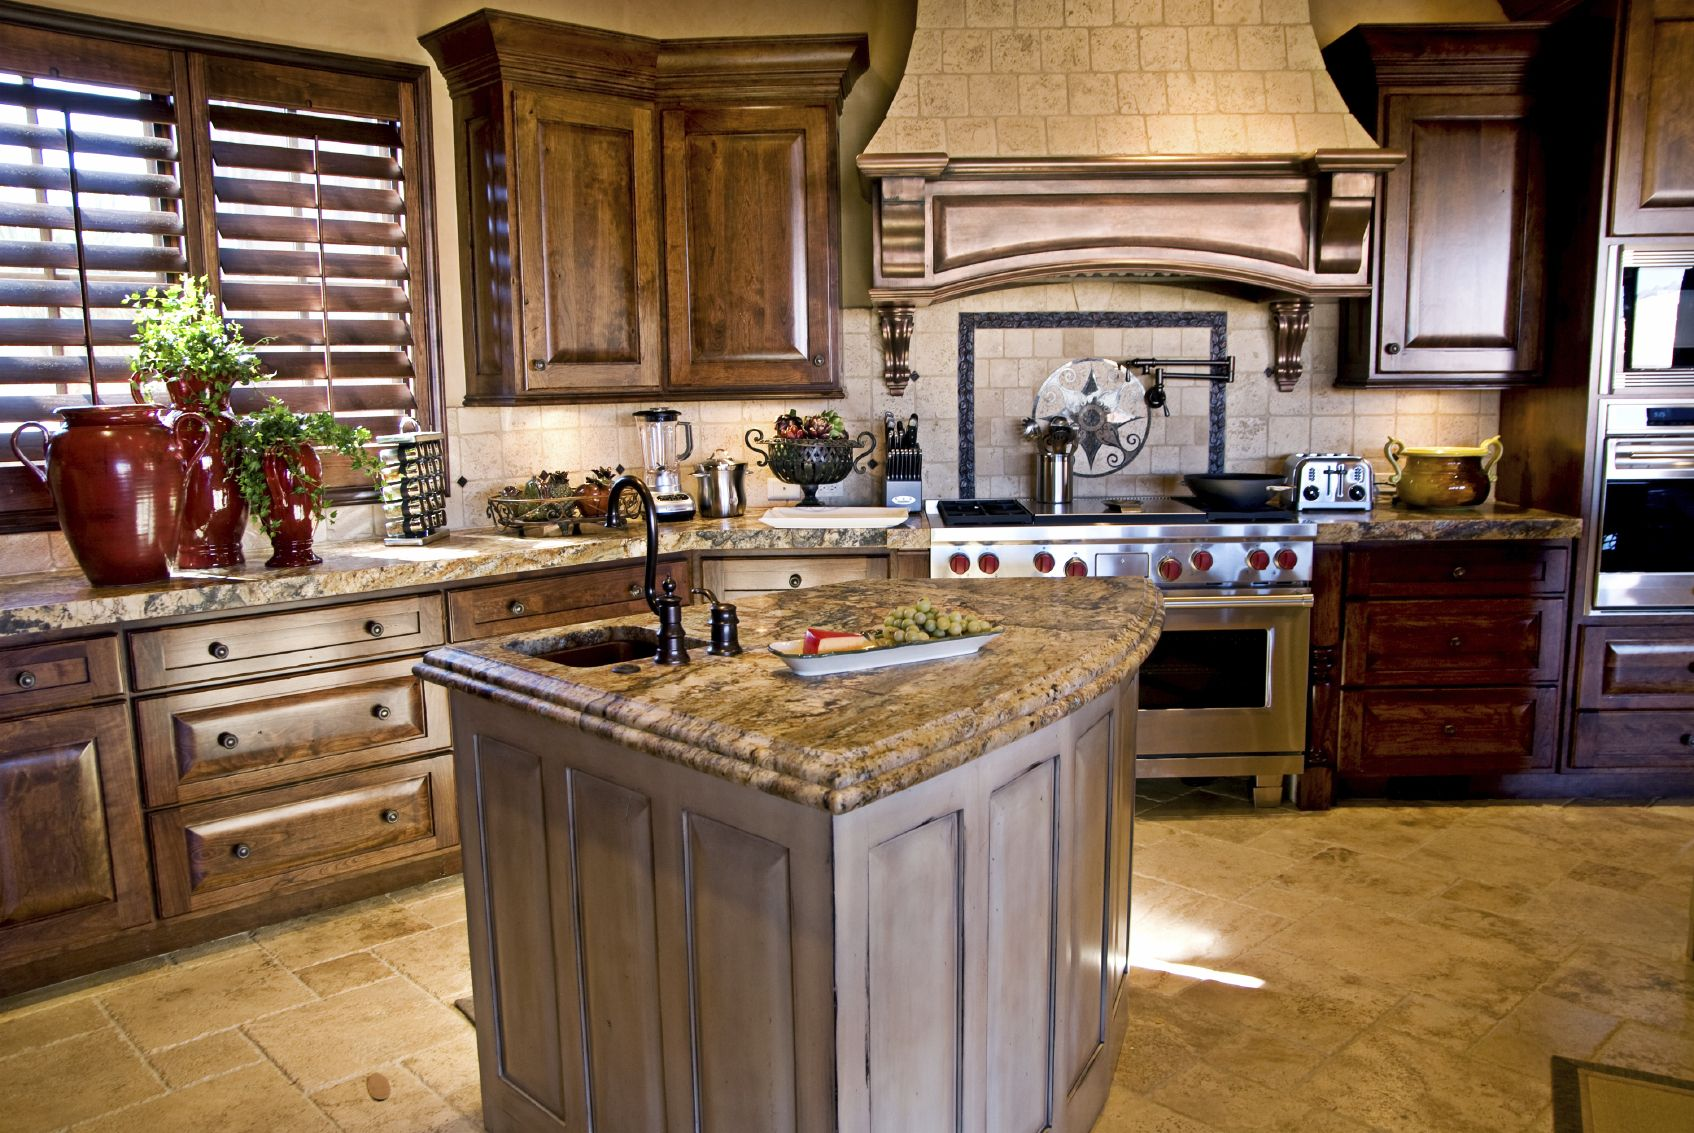 30 Custom Luxury Kitchen Designs That Cost More Than $100000 Prepossessing Design Kitchen Cabinets For Small Kitchen Inspiration